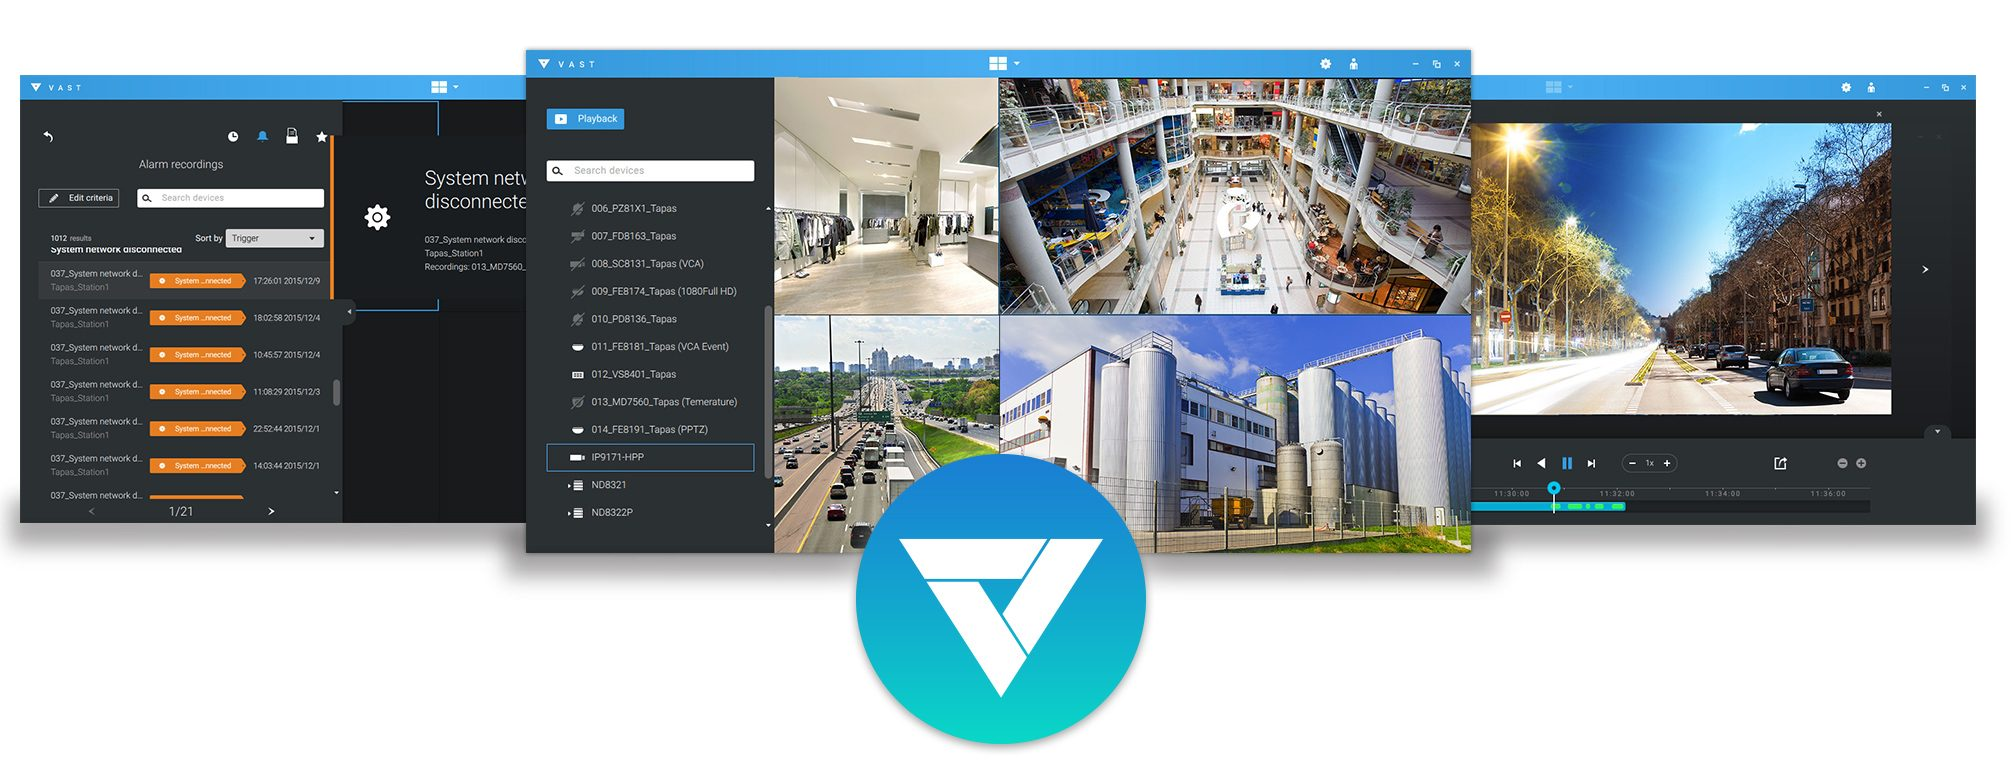 Vivotek's video management software (VMS) VAST 2